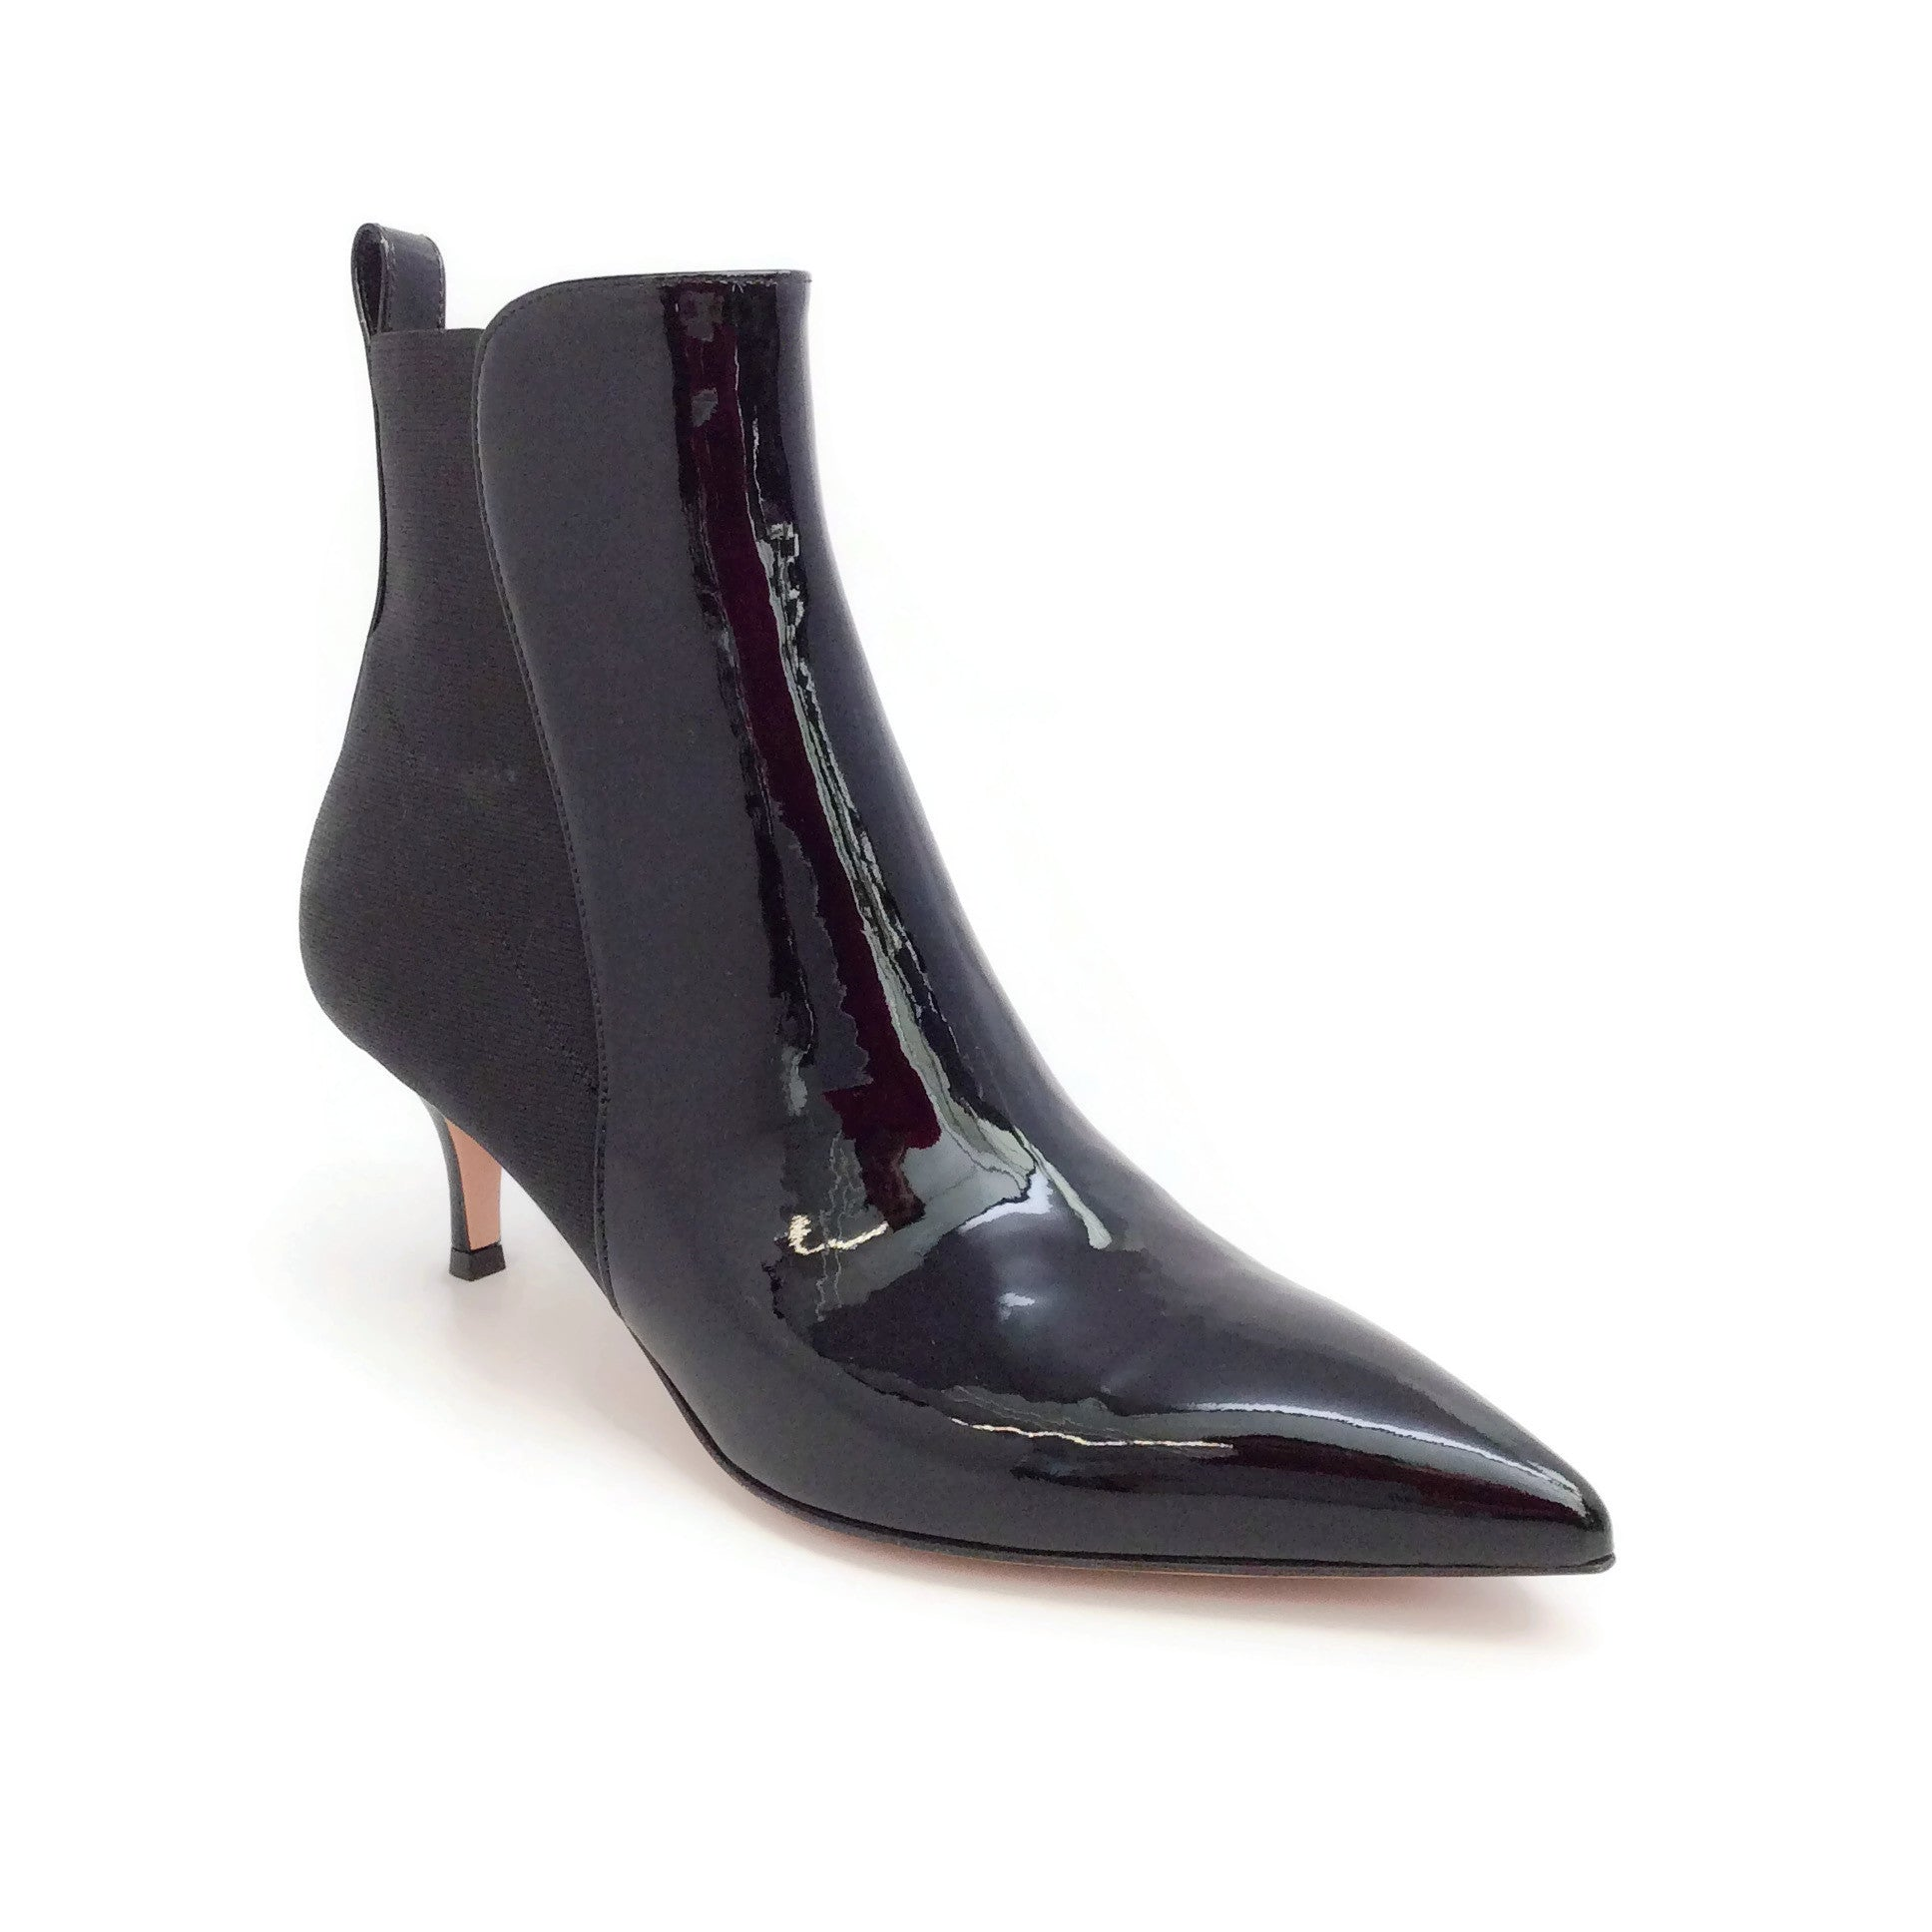 Gianvito Rossi Black Patent Phoebe Boots